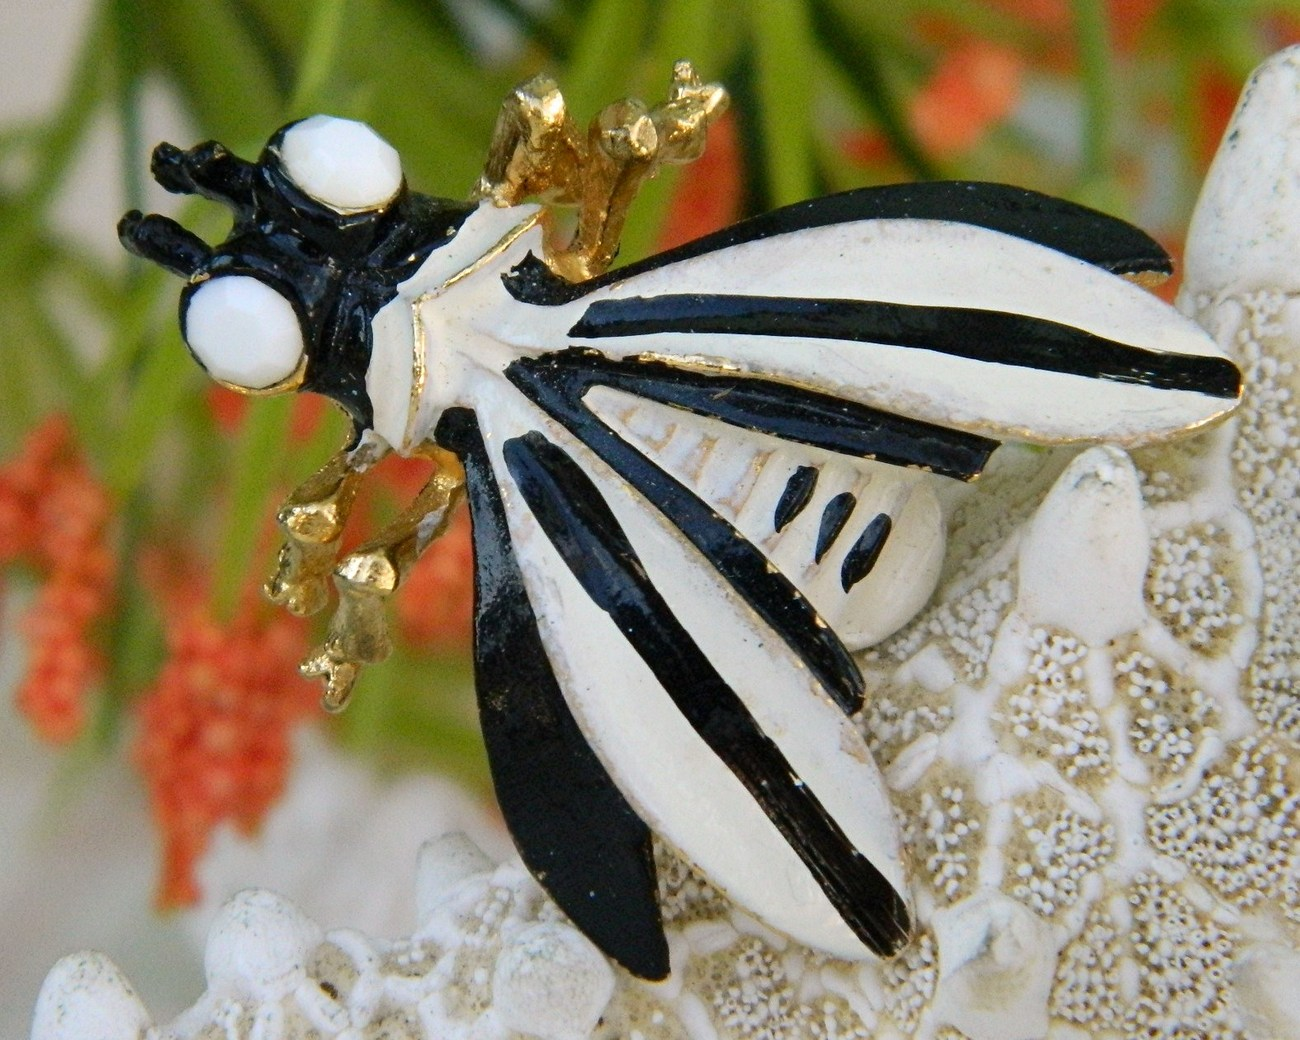 Vintage Weiß : Vintage_weiss_bug_insect_fly_brooch_pin_black_white_enamel